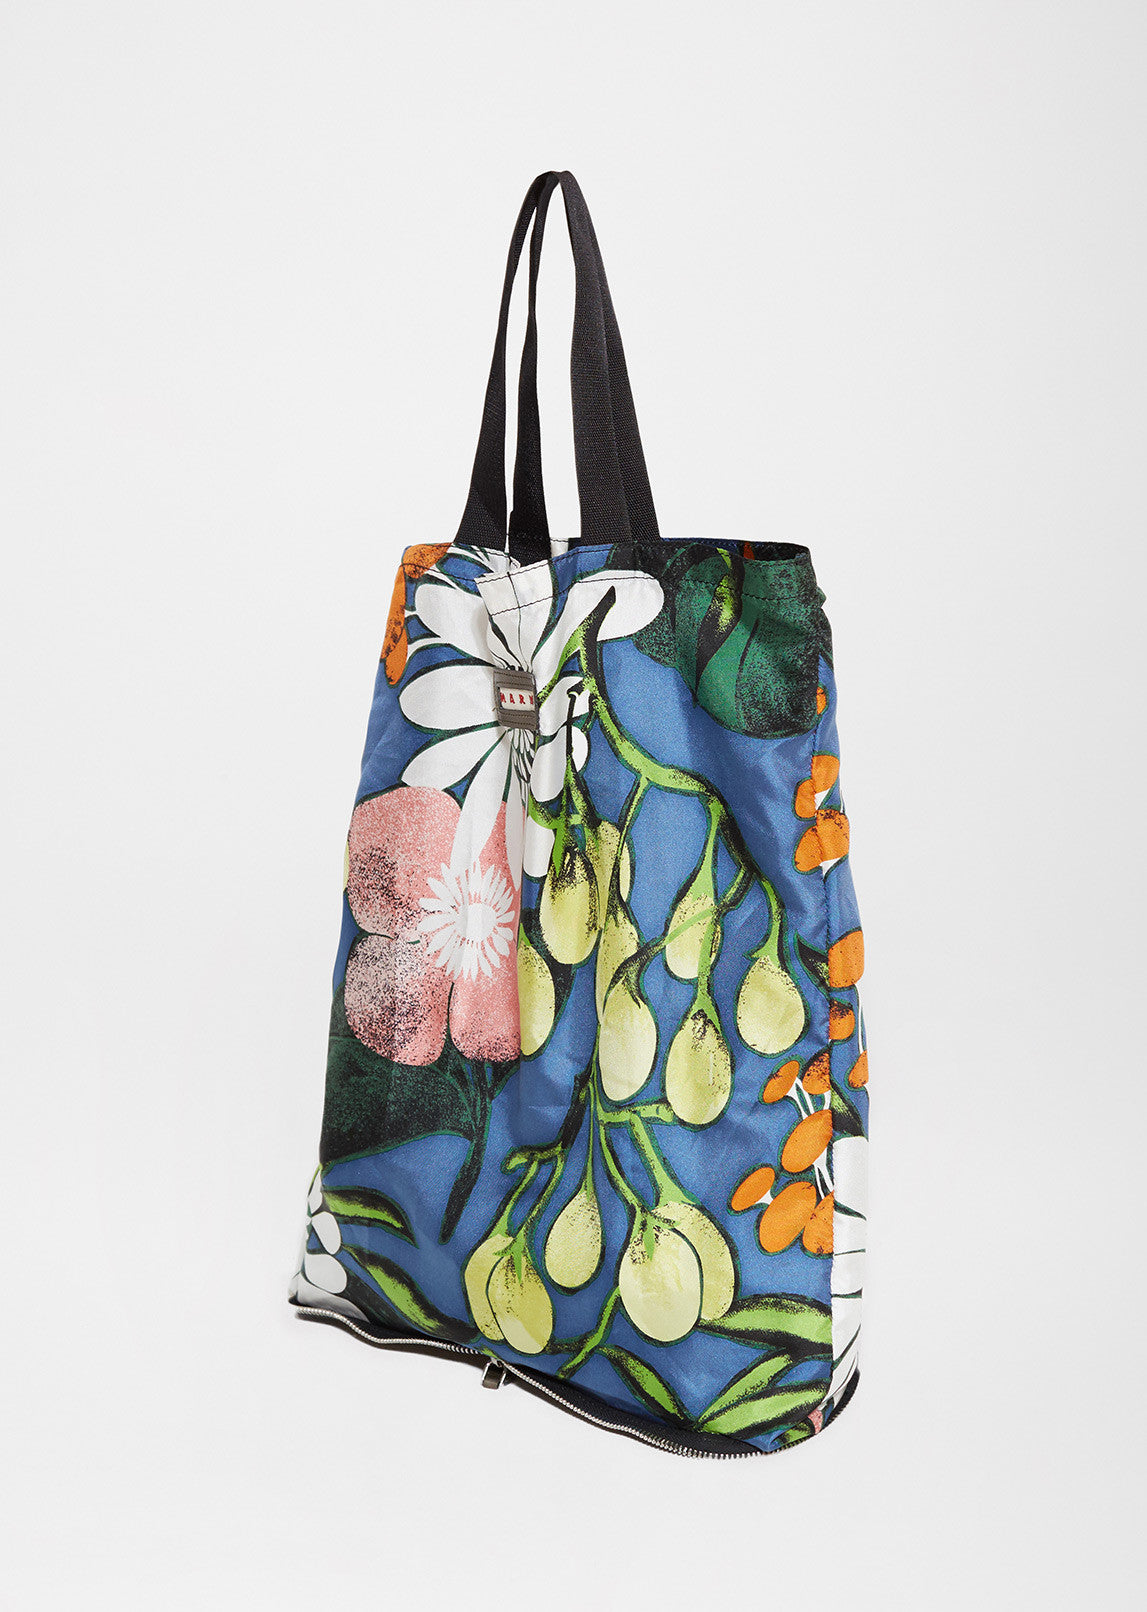 Packable Shopping Bag